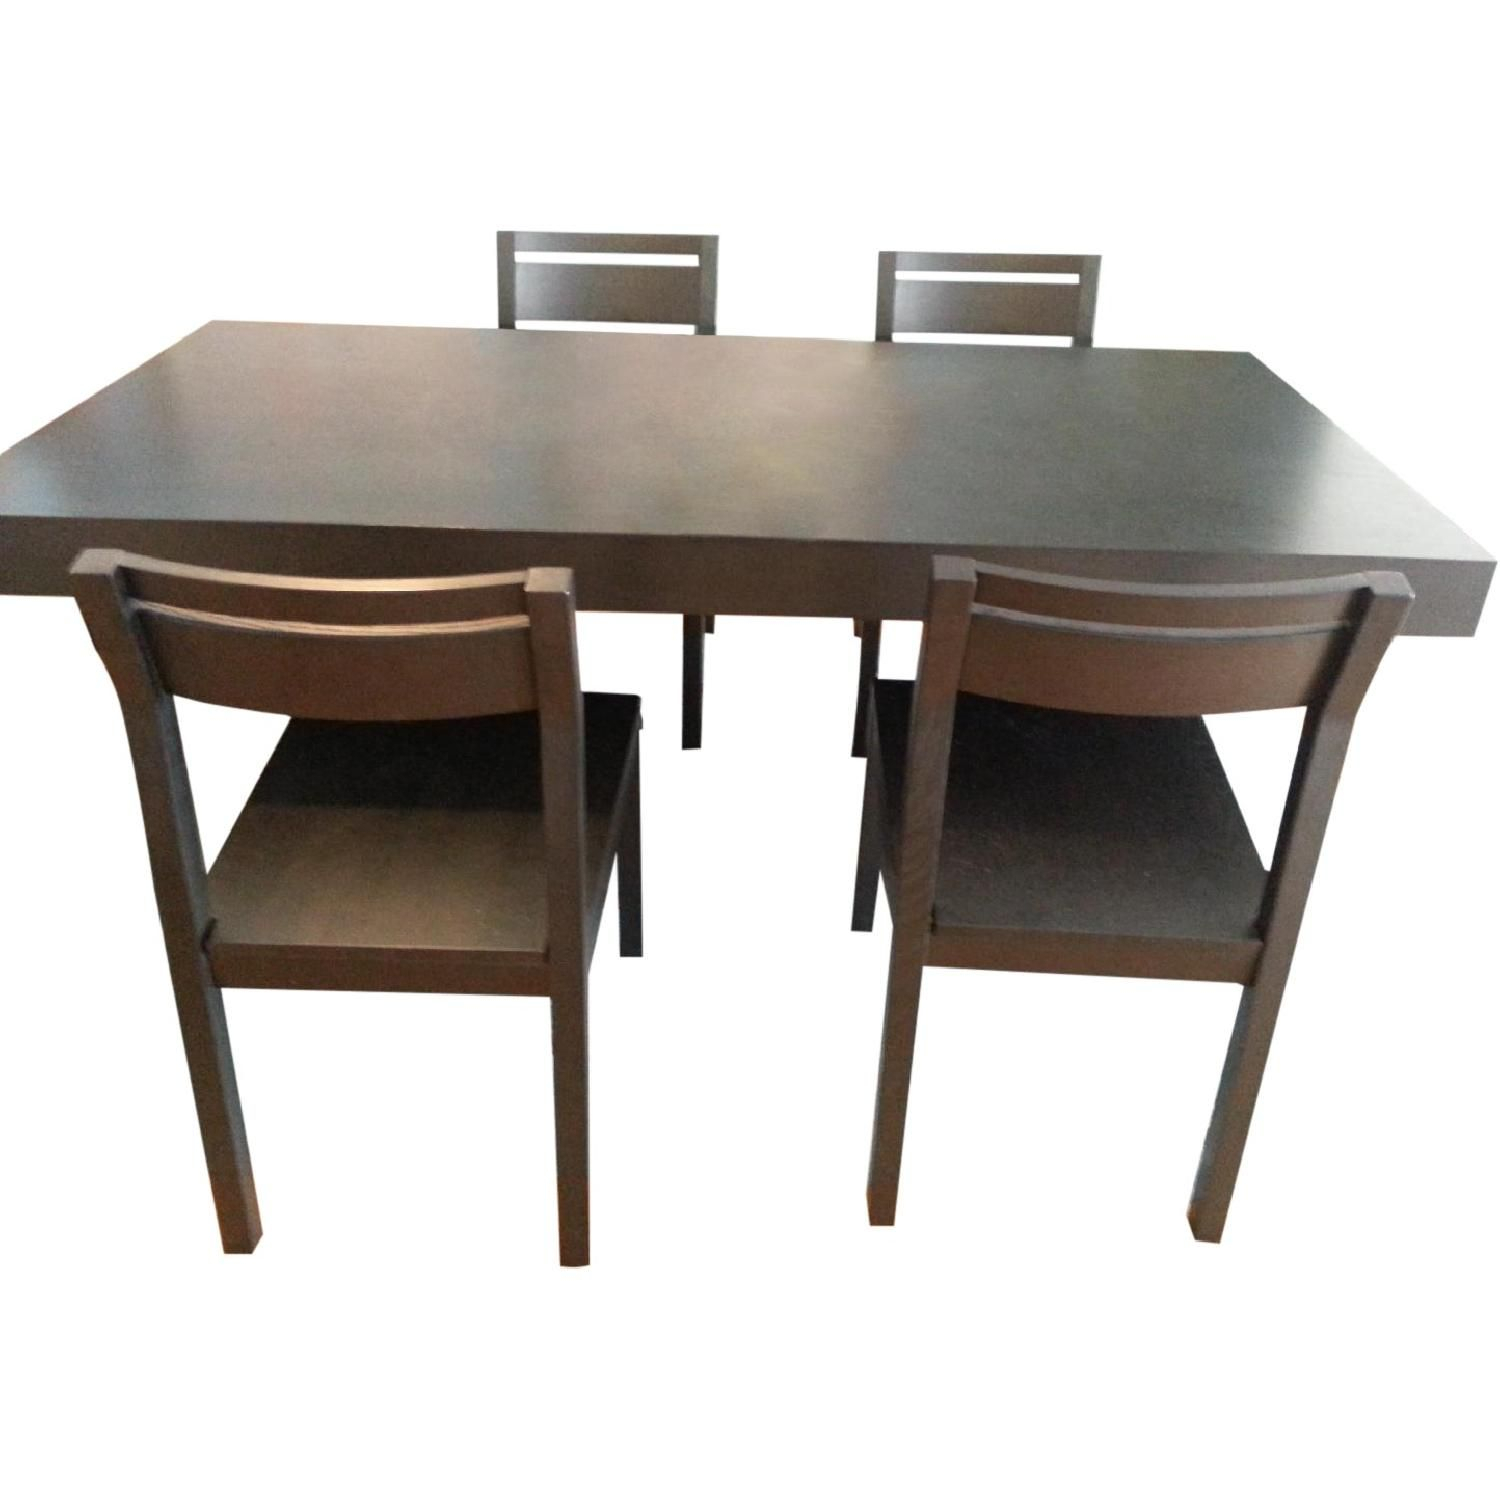 West Elm Terra Dining Table W/ 4 Chairs | Dining Table For Recent West Dining Tables (View 24 of 25)